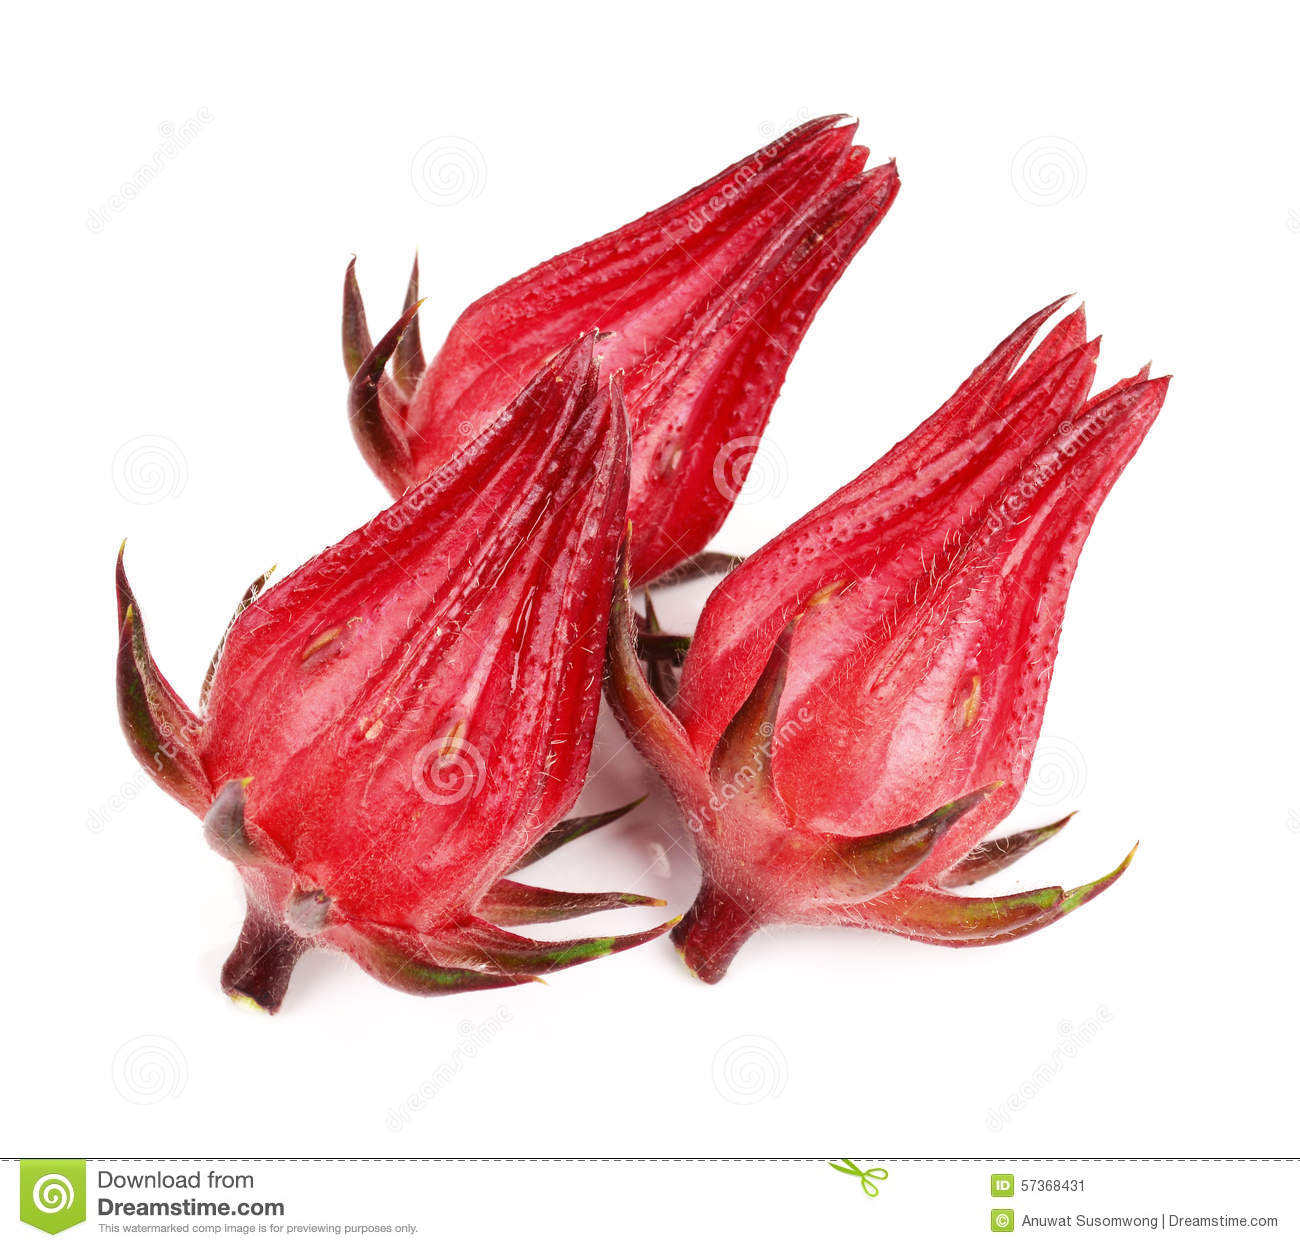 Roselle Fruits Royalty-Free Stock Image